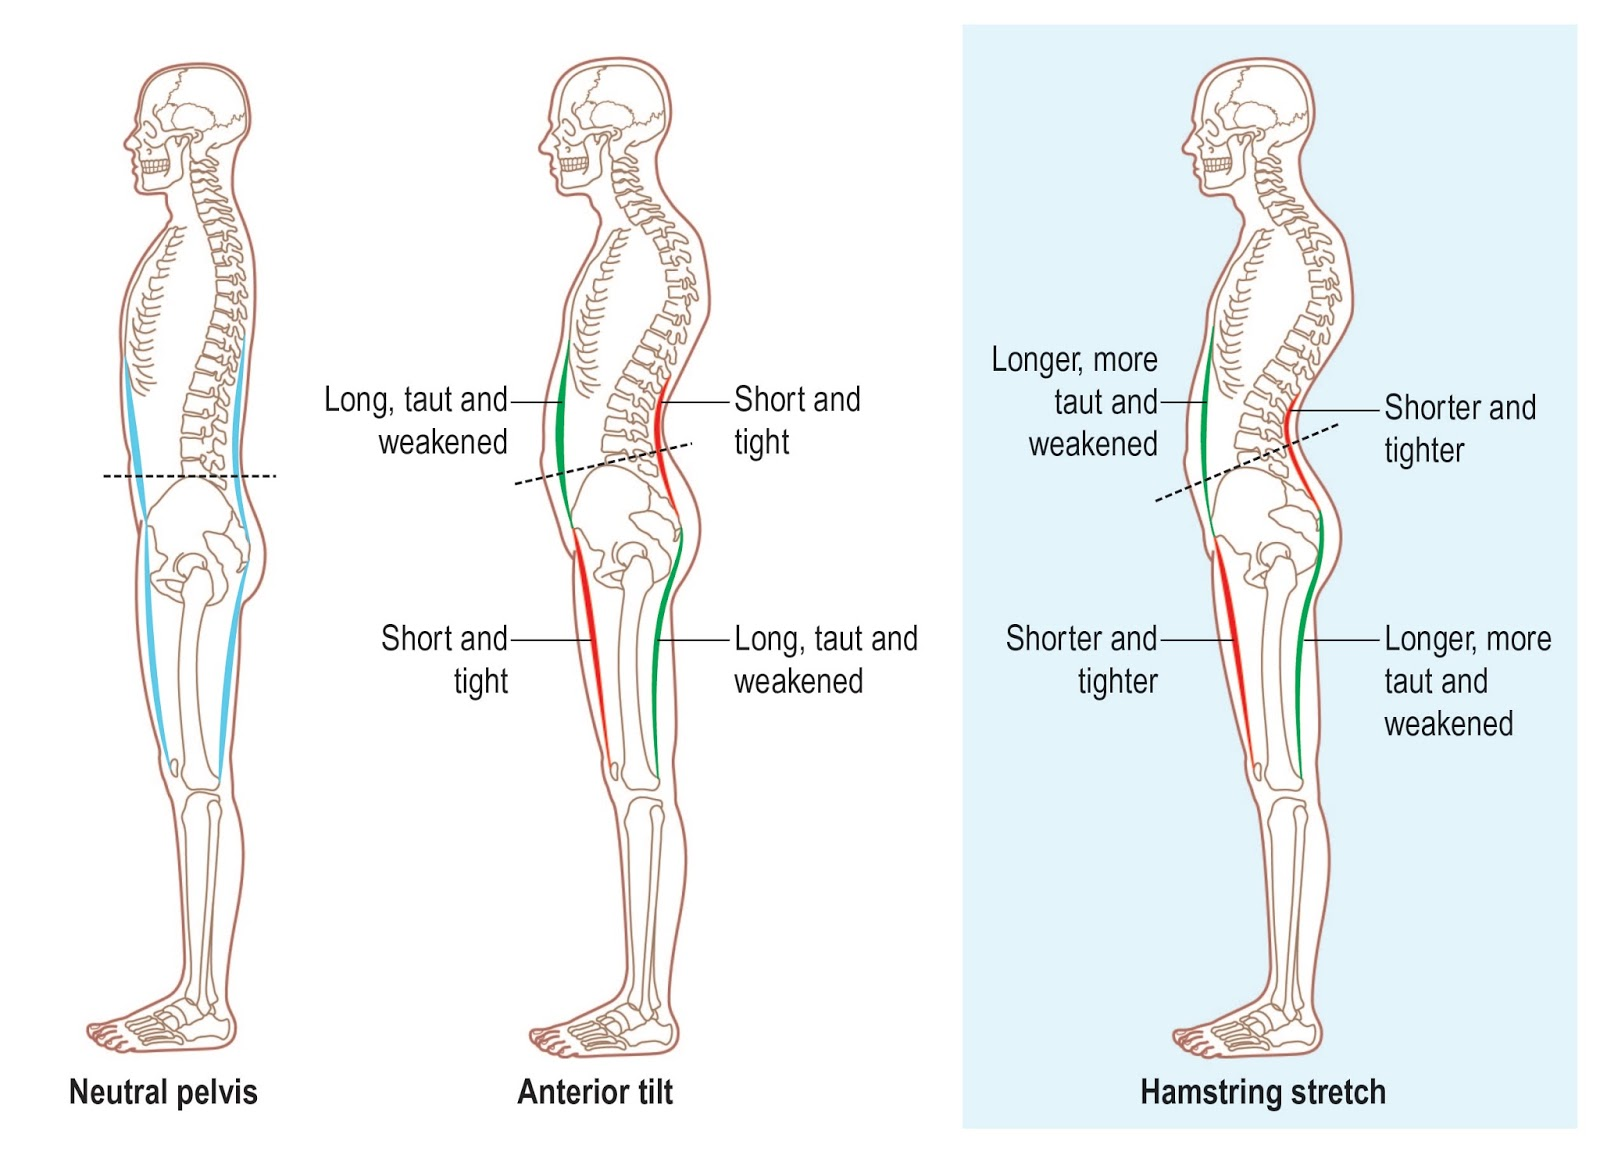 Workouts to Prevent Back Pain, Hamstring Injury & Anterior Pelvic Tilt